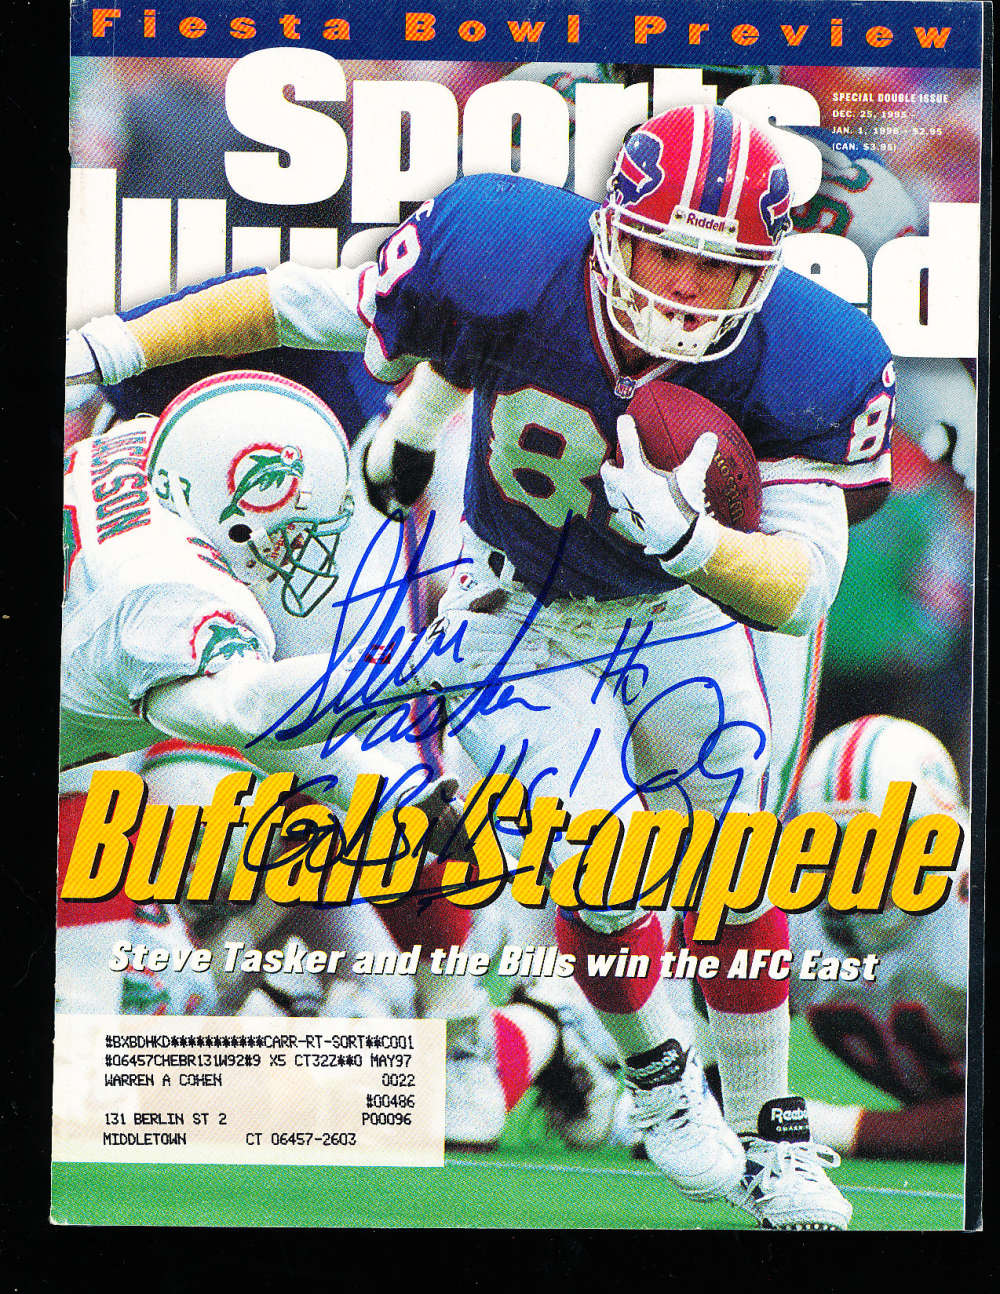 1/1/ 1996 Steve Taster Bills Regional Signed Sports Illustrated